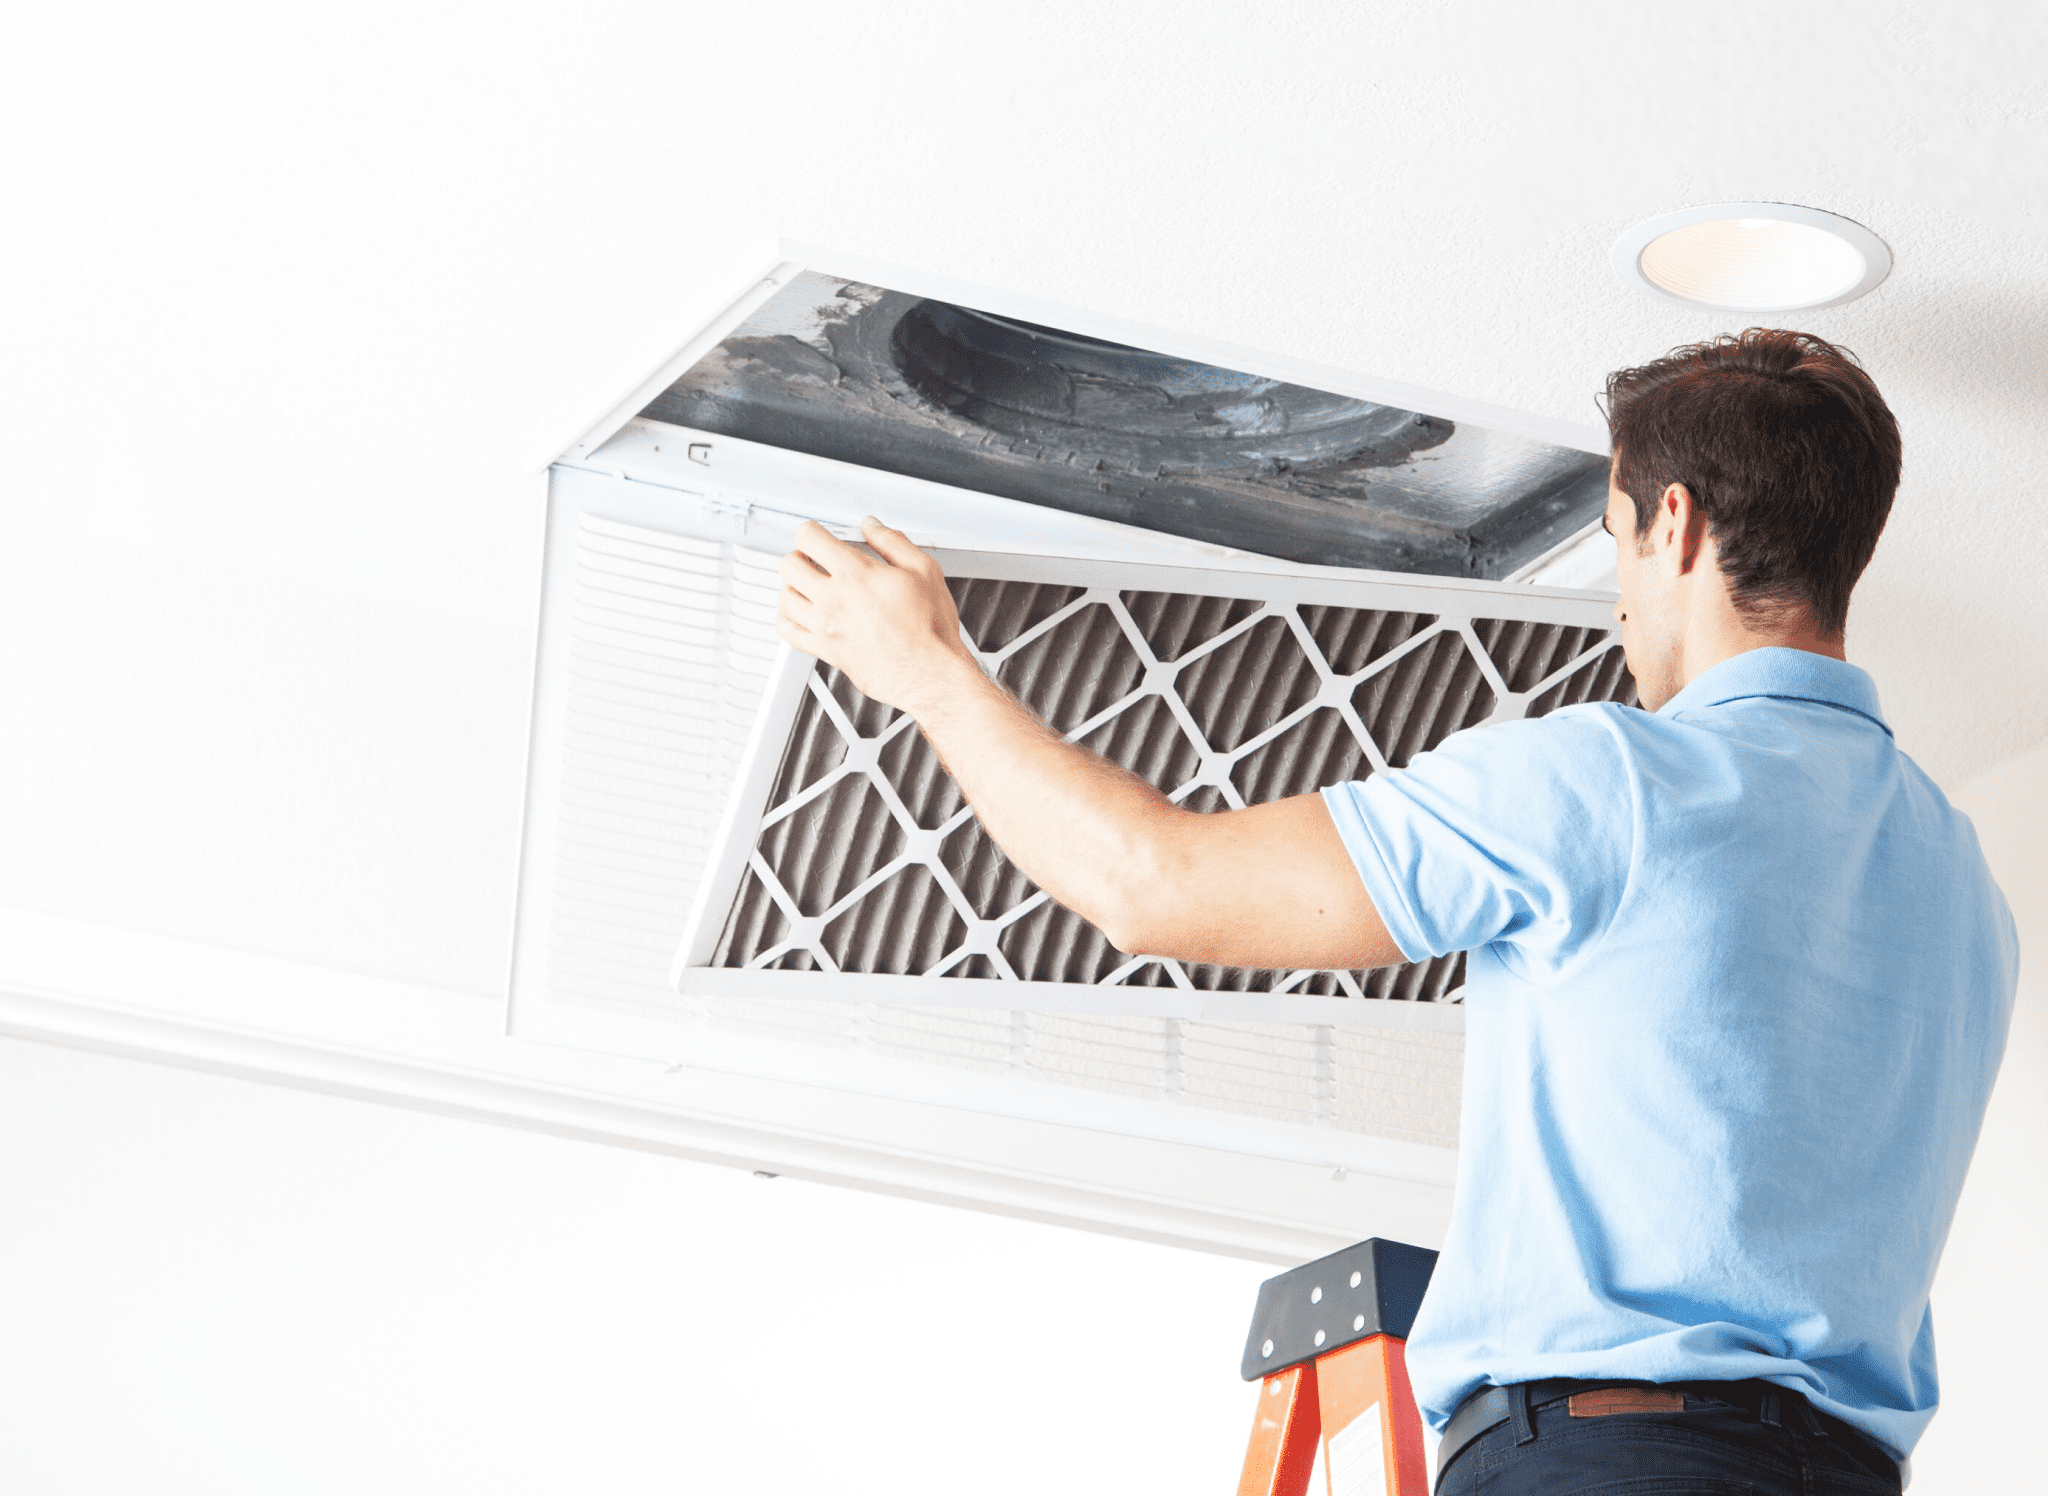 HVAC specialist fixing vents and ducts